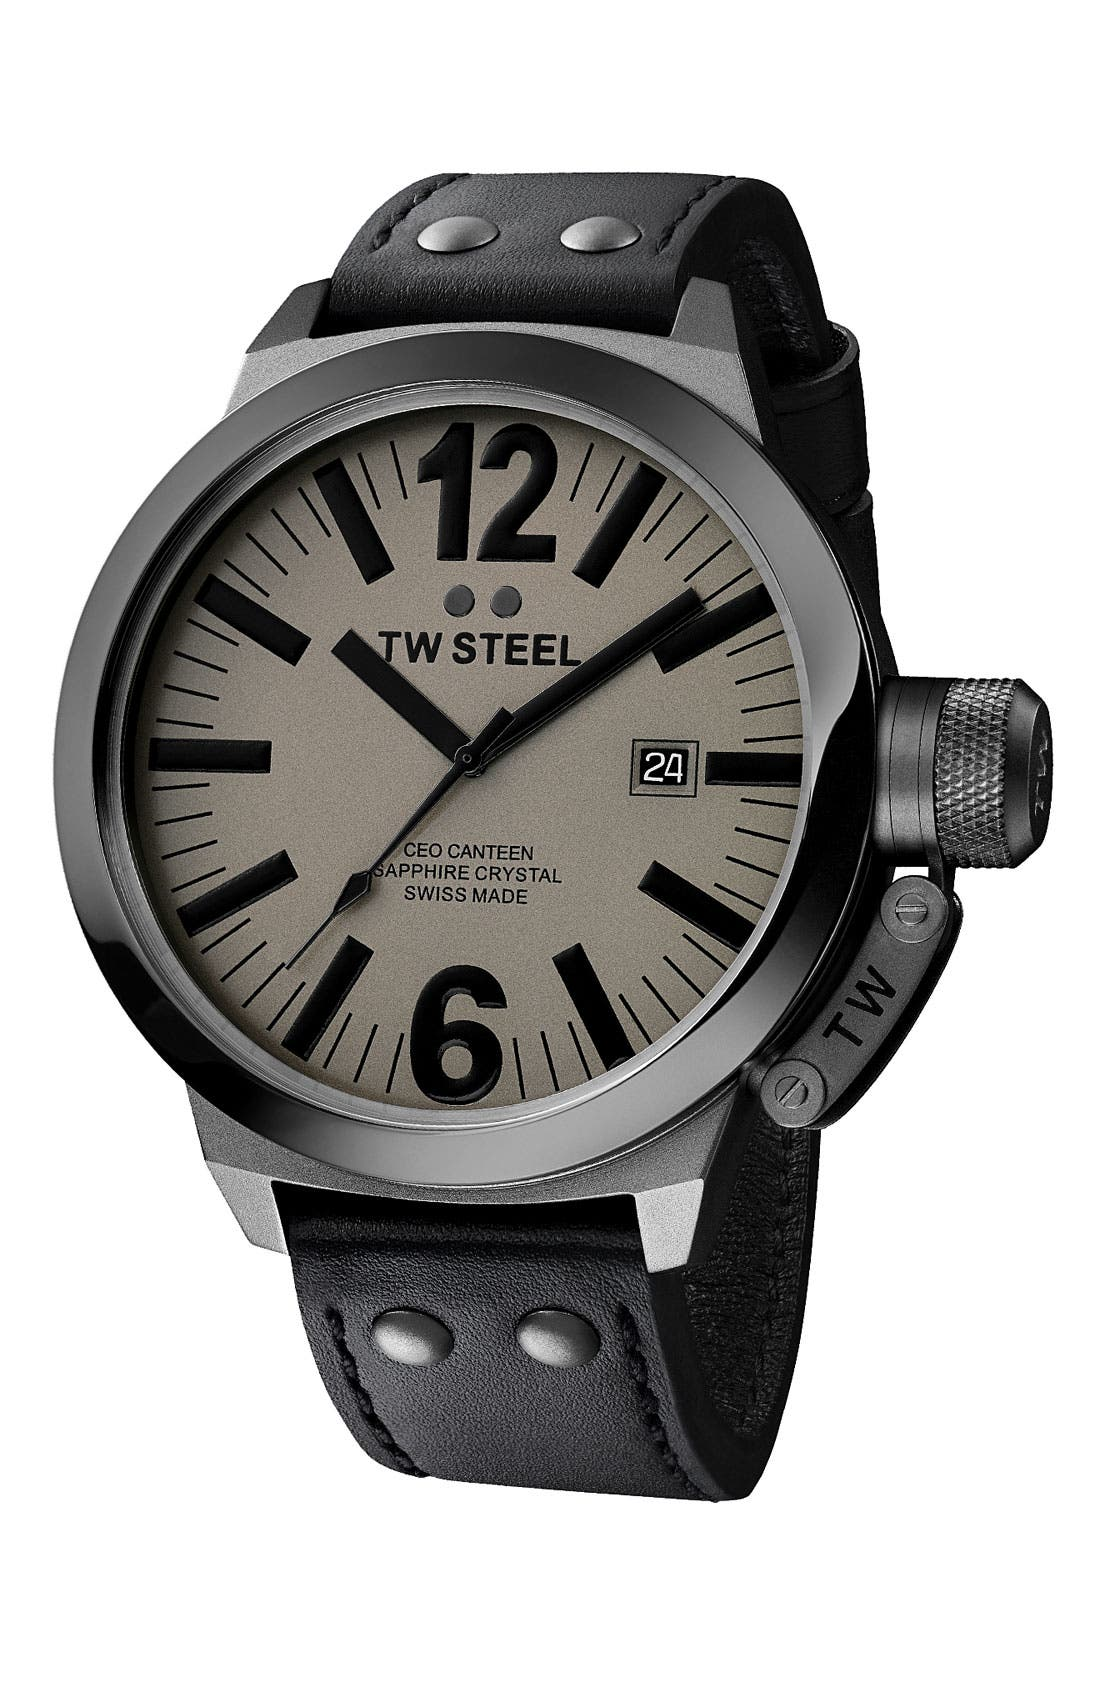 Alternate Image 1 Selected - TW Steel 'CEO Canteen - Extra Large' Leather Strap Watch